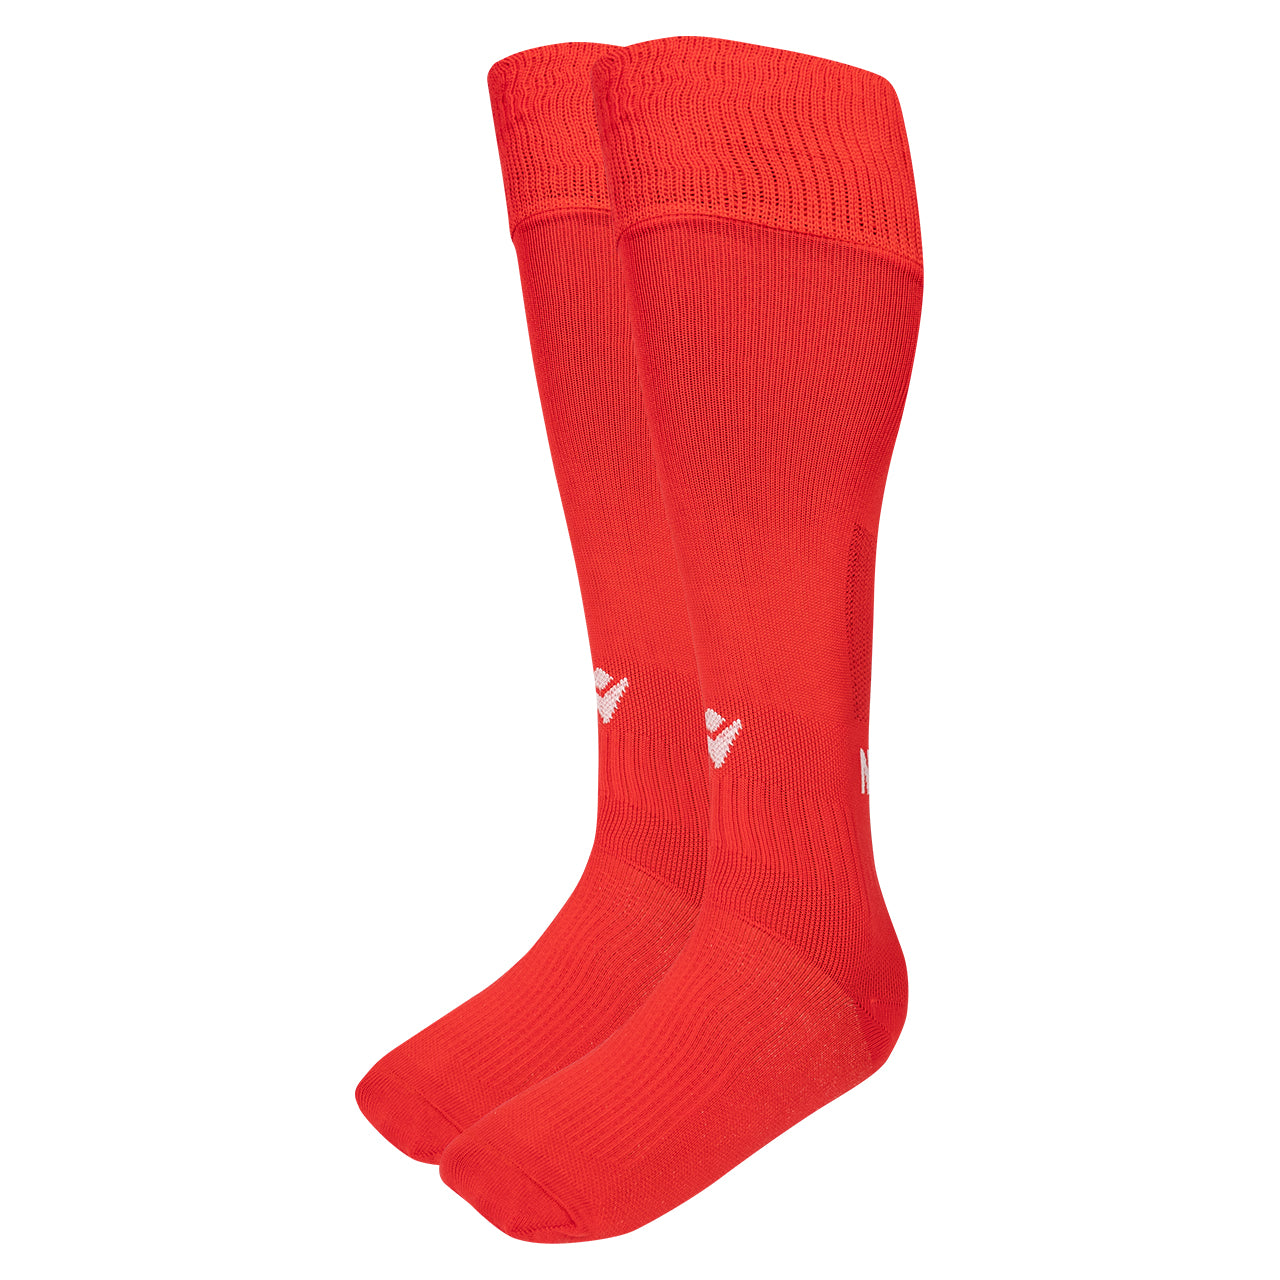 NFFC Mens Home Socks 2020/21